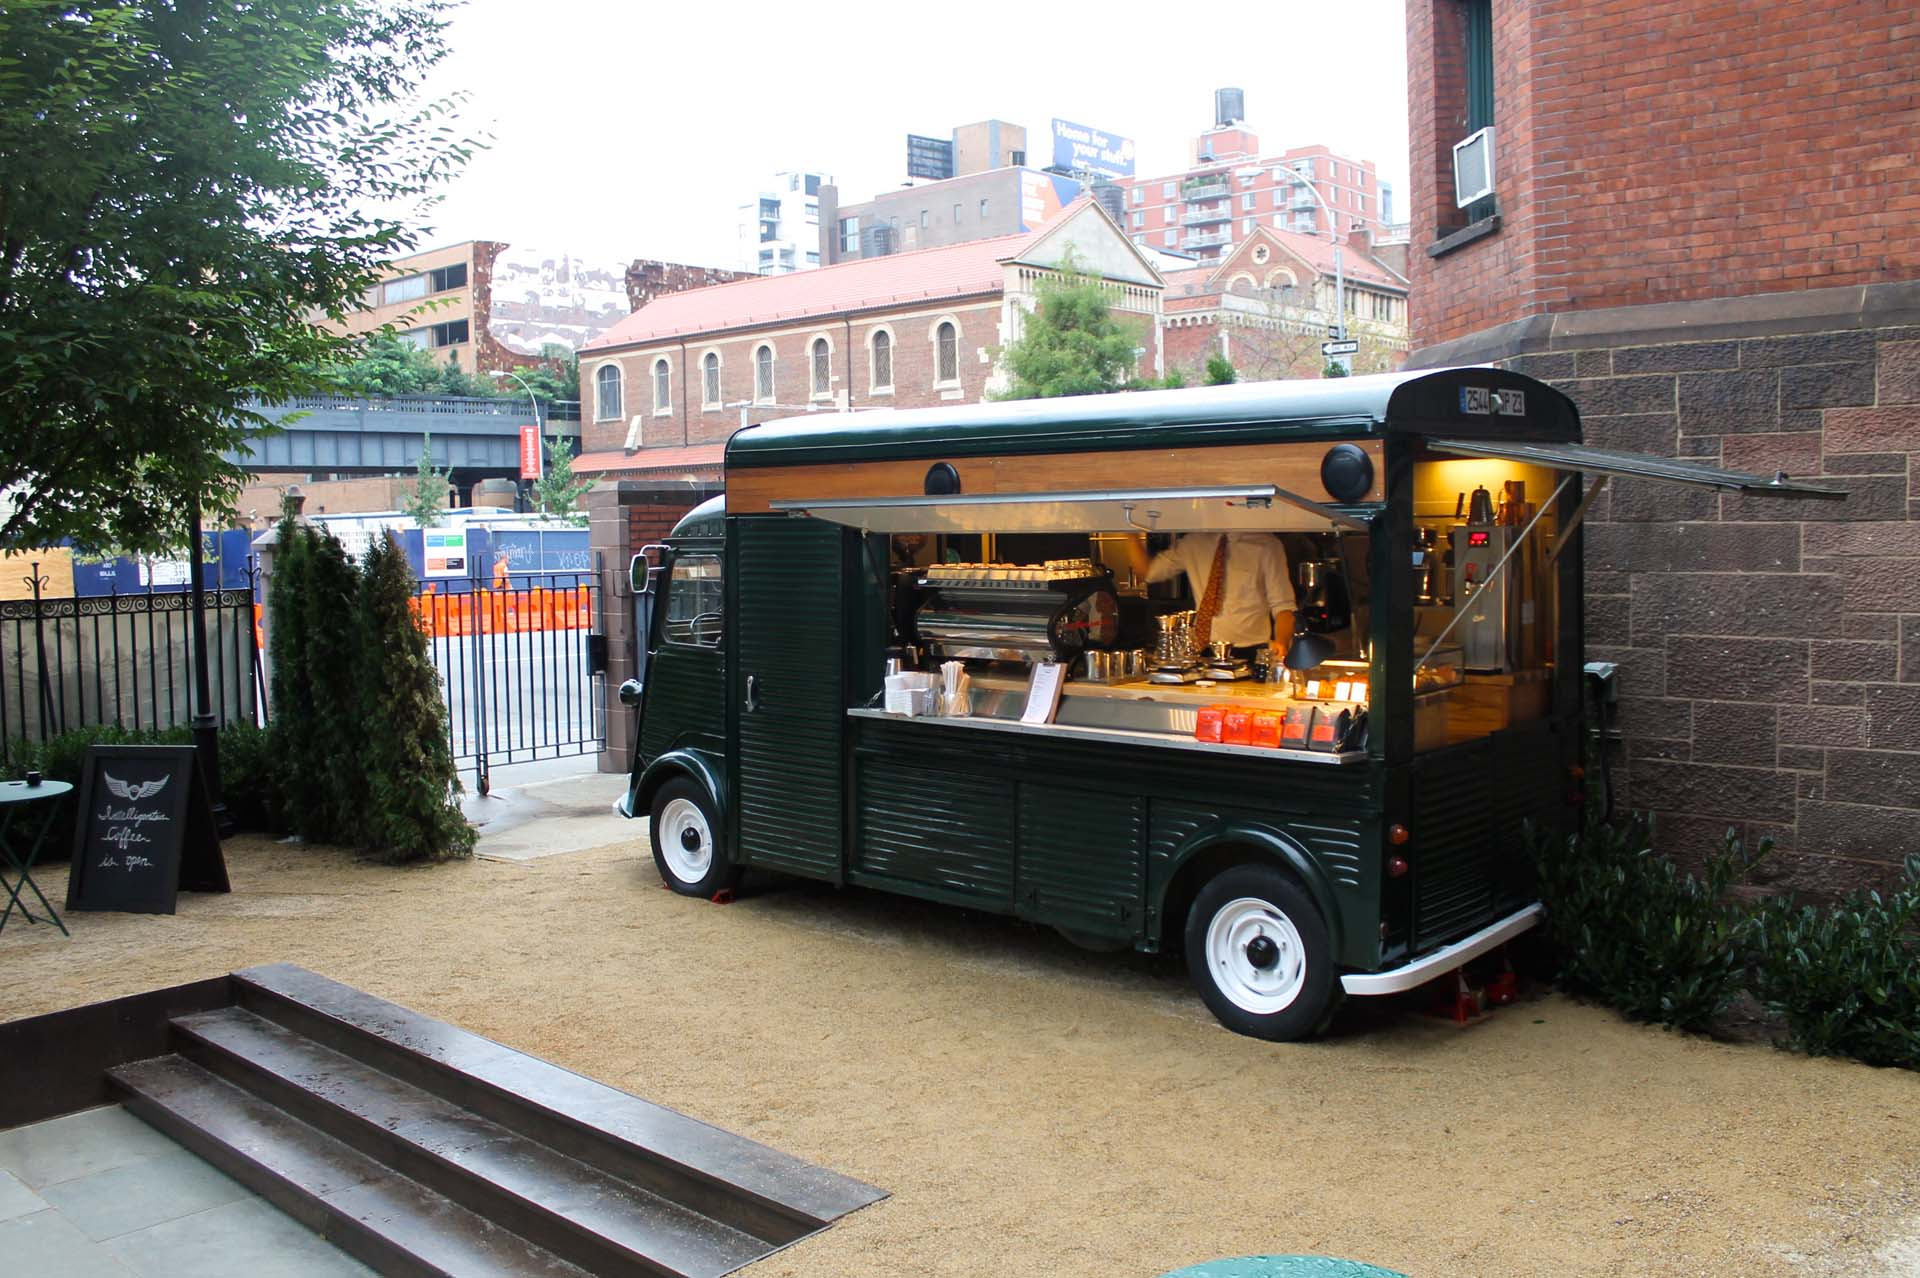 While not as crazy as a giant, pig-shaped truck, Intelligentsia scores big points for fitting into its environment, hip, trendy downtown Manhattan, serving up coffee just outside the swank High Line Hotel at the corner of 10<sup>th</sup> Ave and 20<sup>th</sup> St. Starting with a 1967 Citroen HY Van, its designers retrofitted the interior to house a full barista bar and service counter. And painted it black, of course.